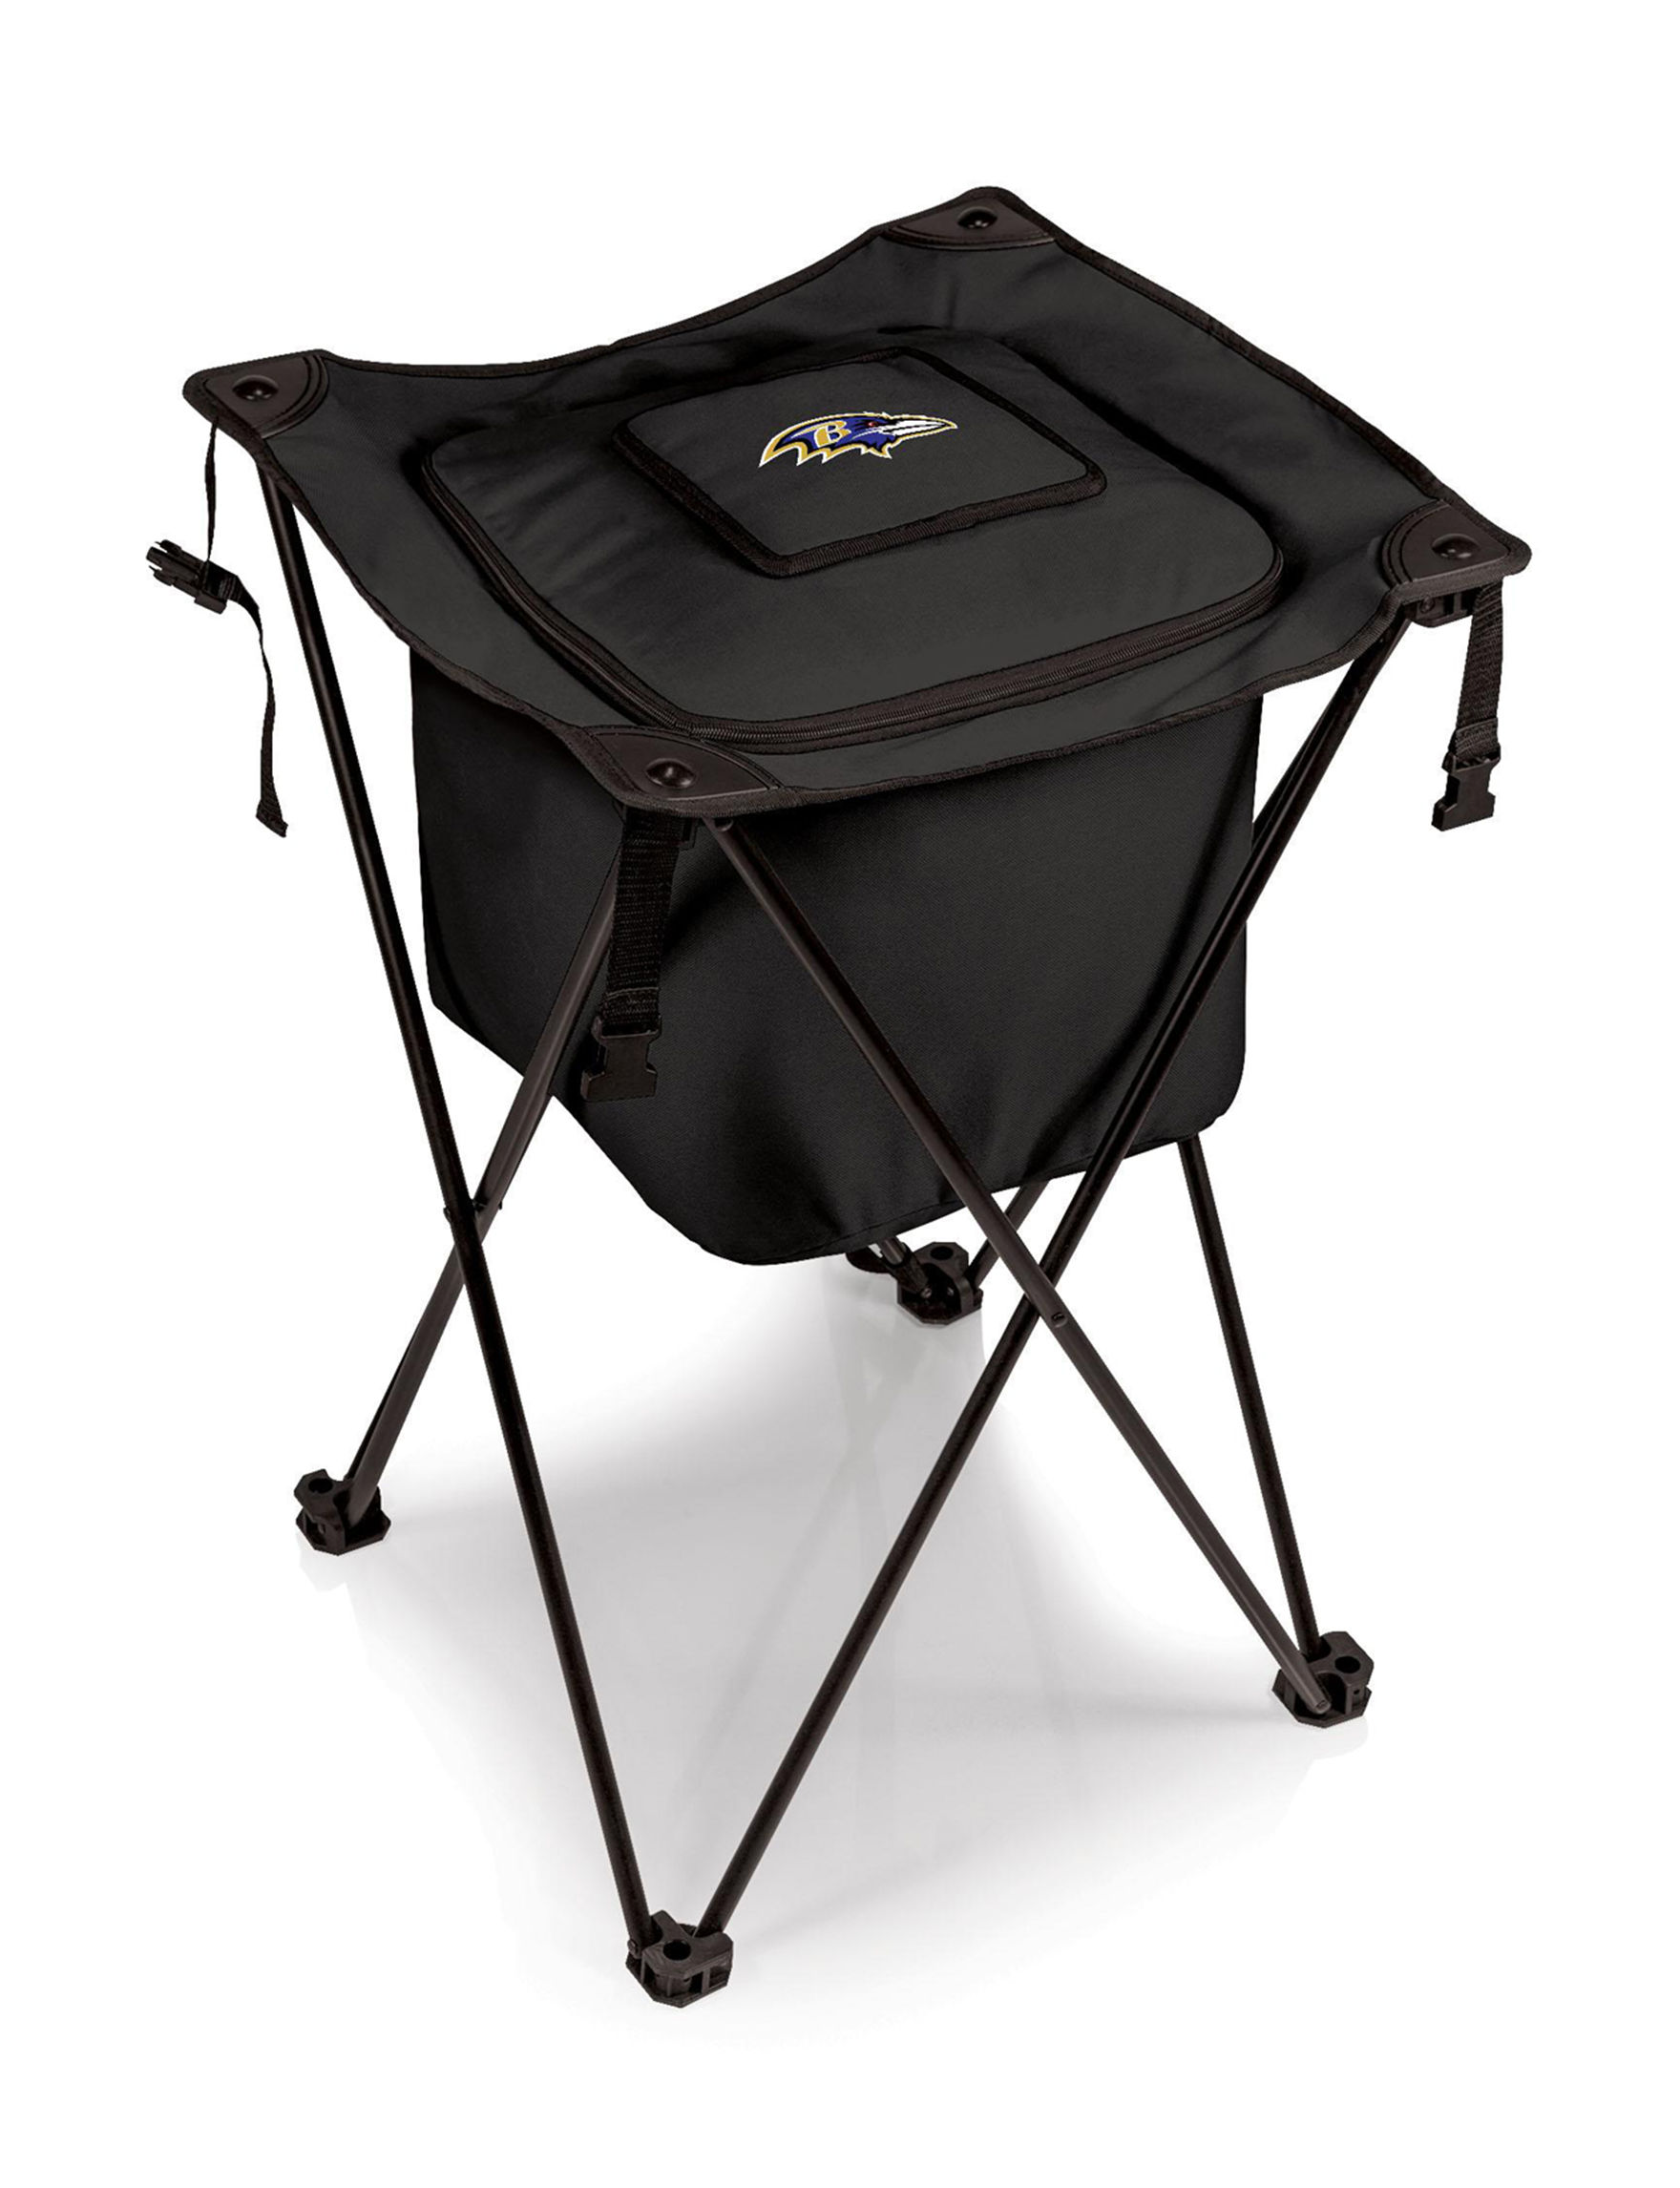 Picnic Time Black Coolers Camping & Outdoor Gear